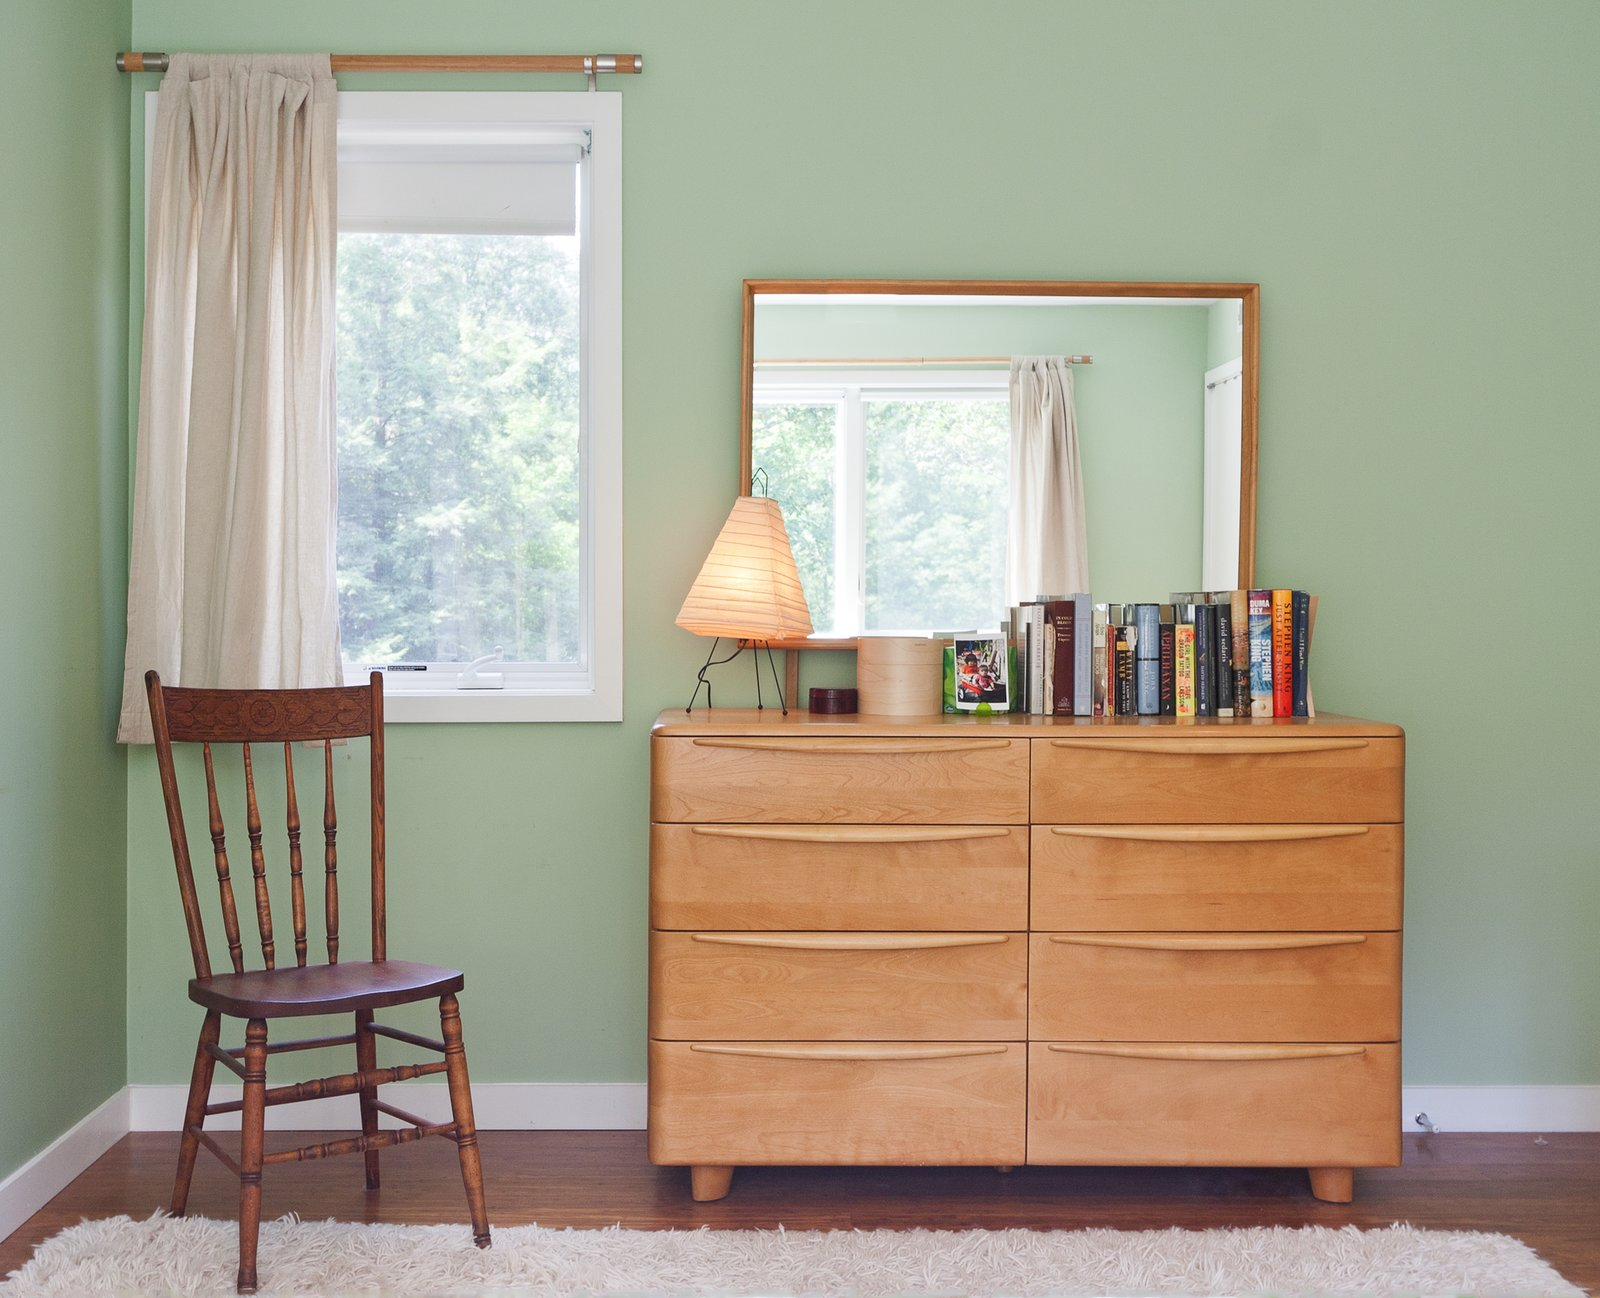 Bedroom, Dresser, and Chair  Catskills Suburban by Resolution: 4 Architecture